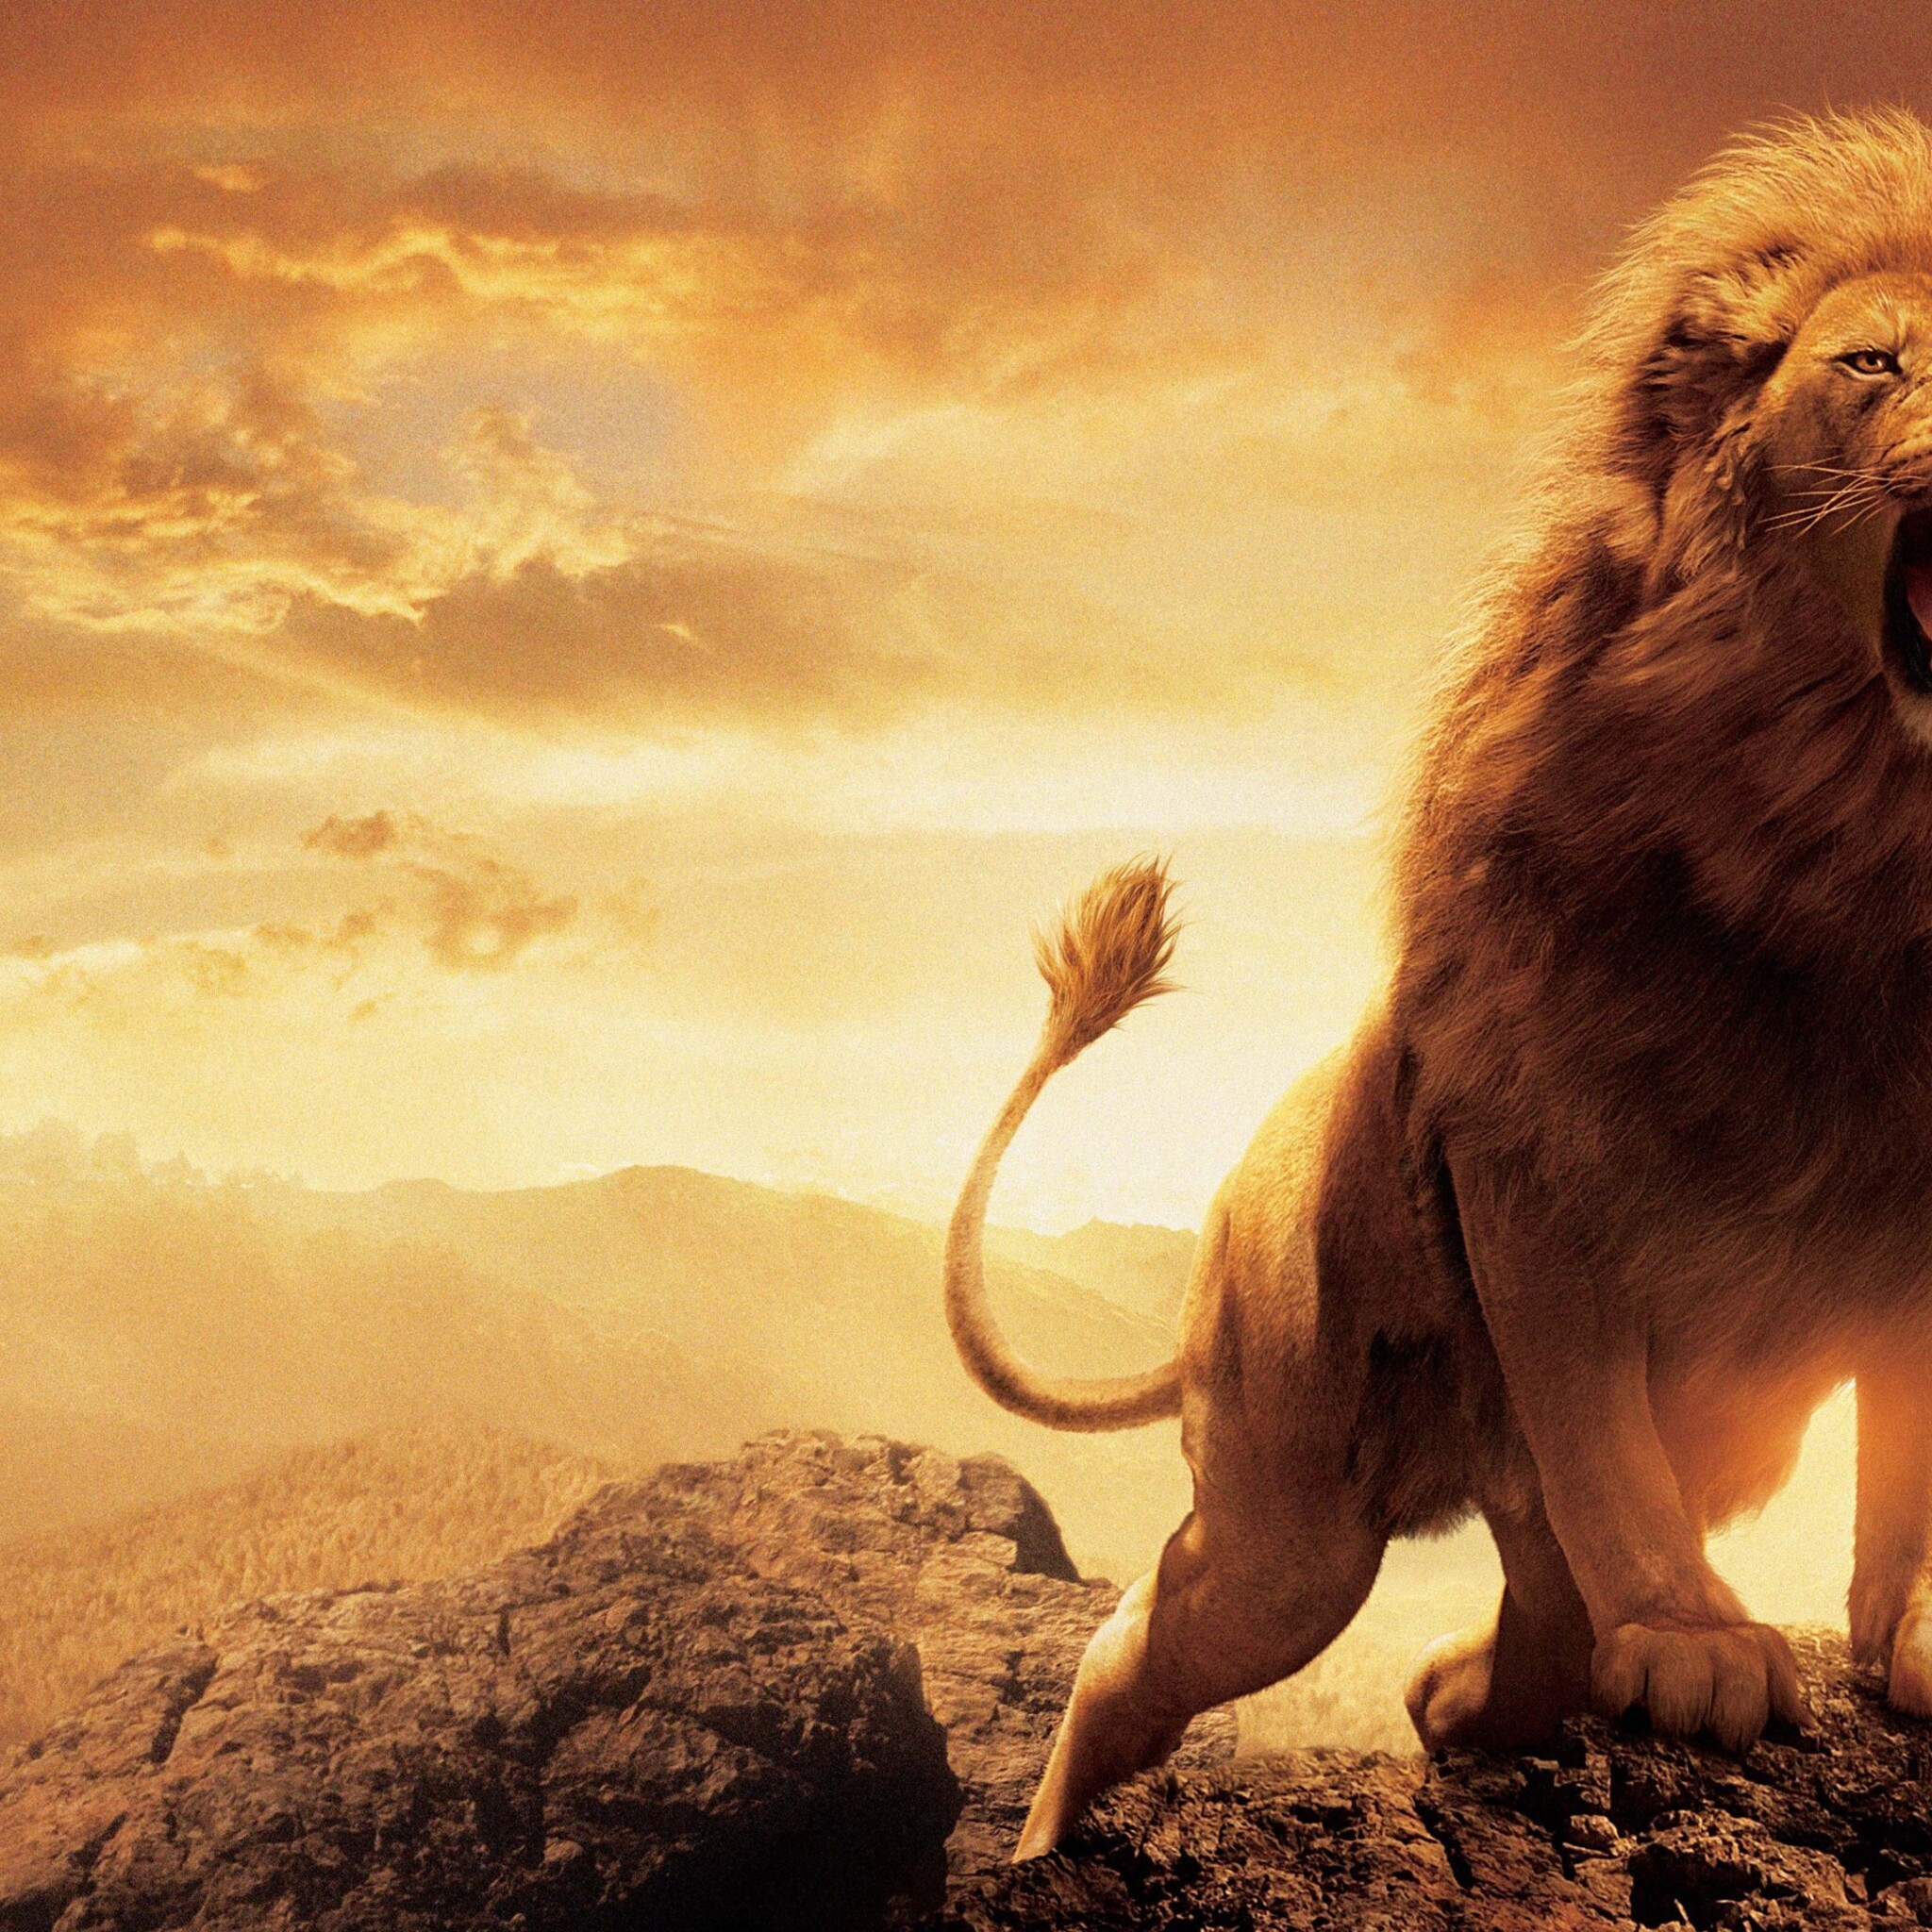 Hd 1600x900 Wallpaper: 2048x2048 Narnia Lion Ipad Air HD 4k Wallpapers, Images